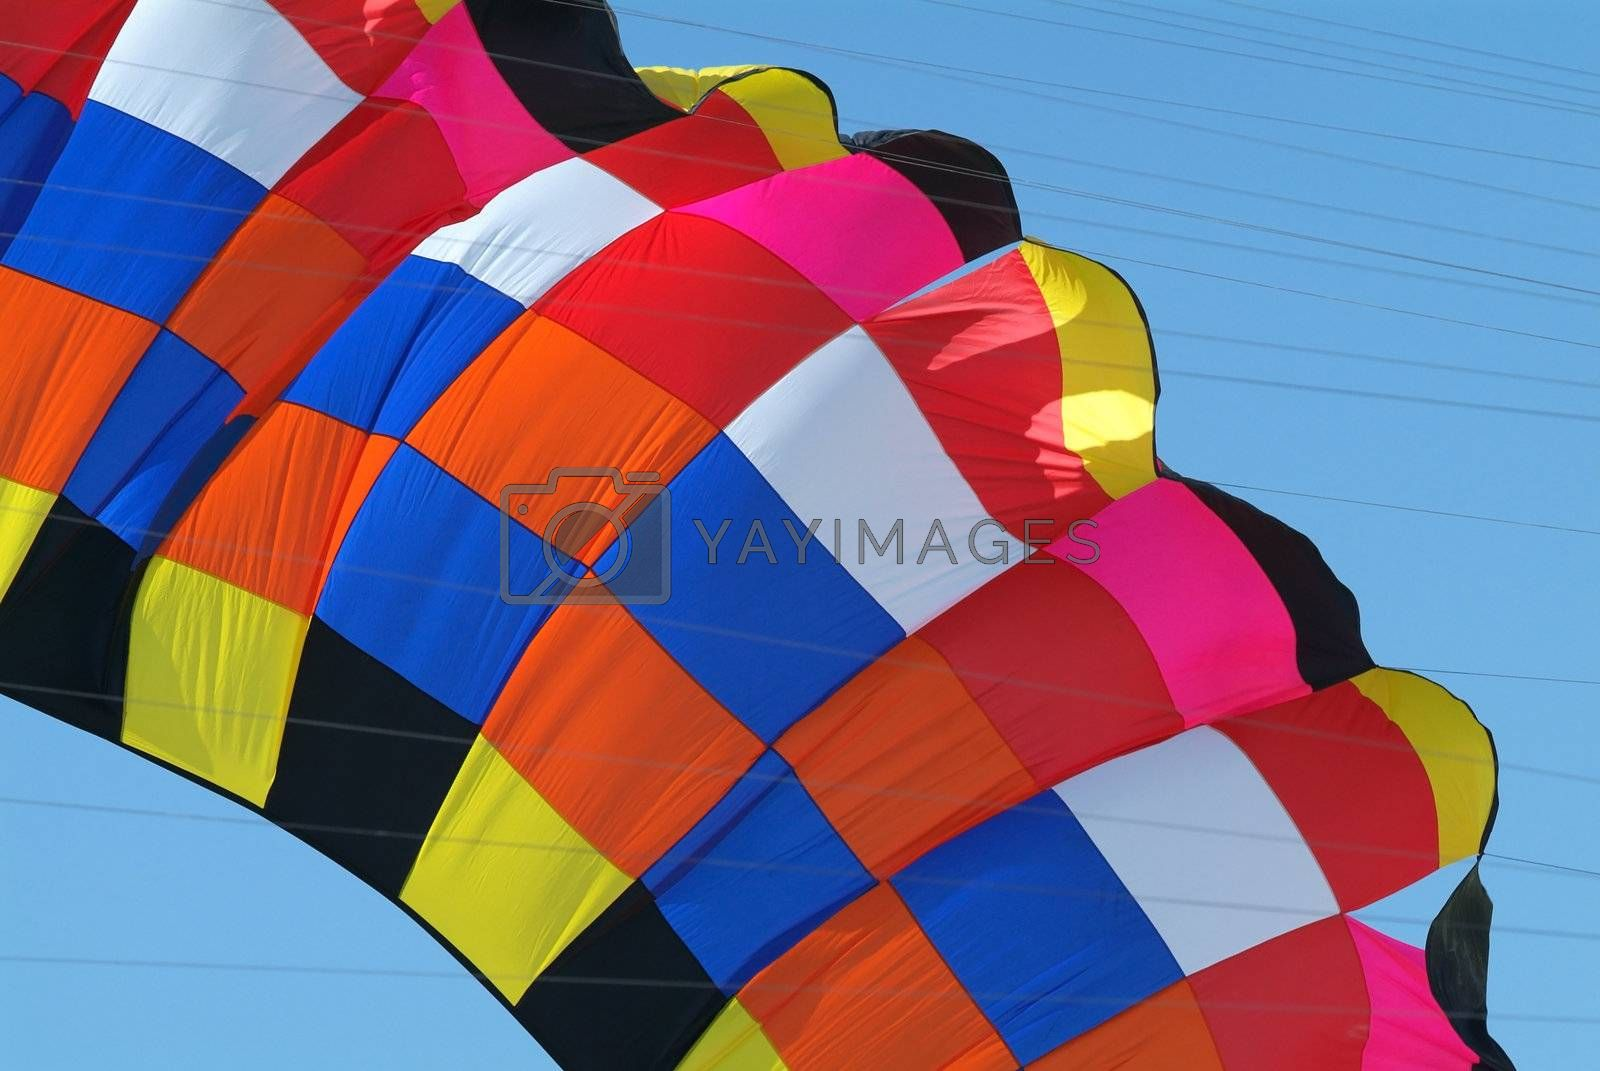 Detail of colourful kite by epixx